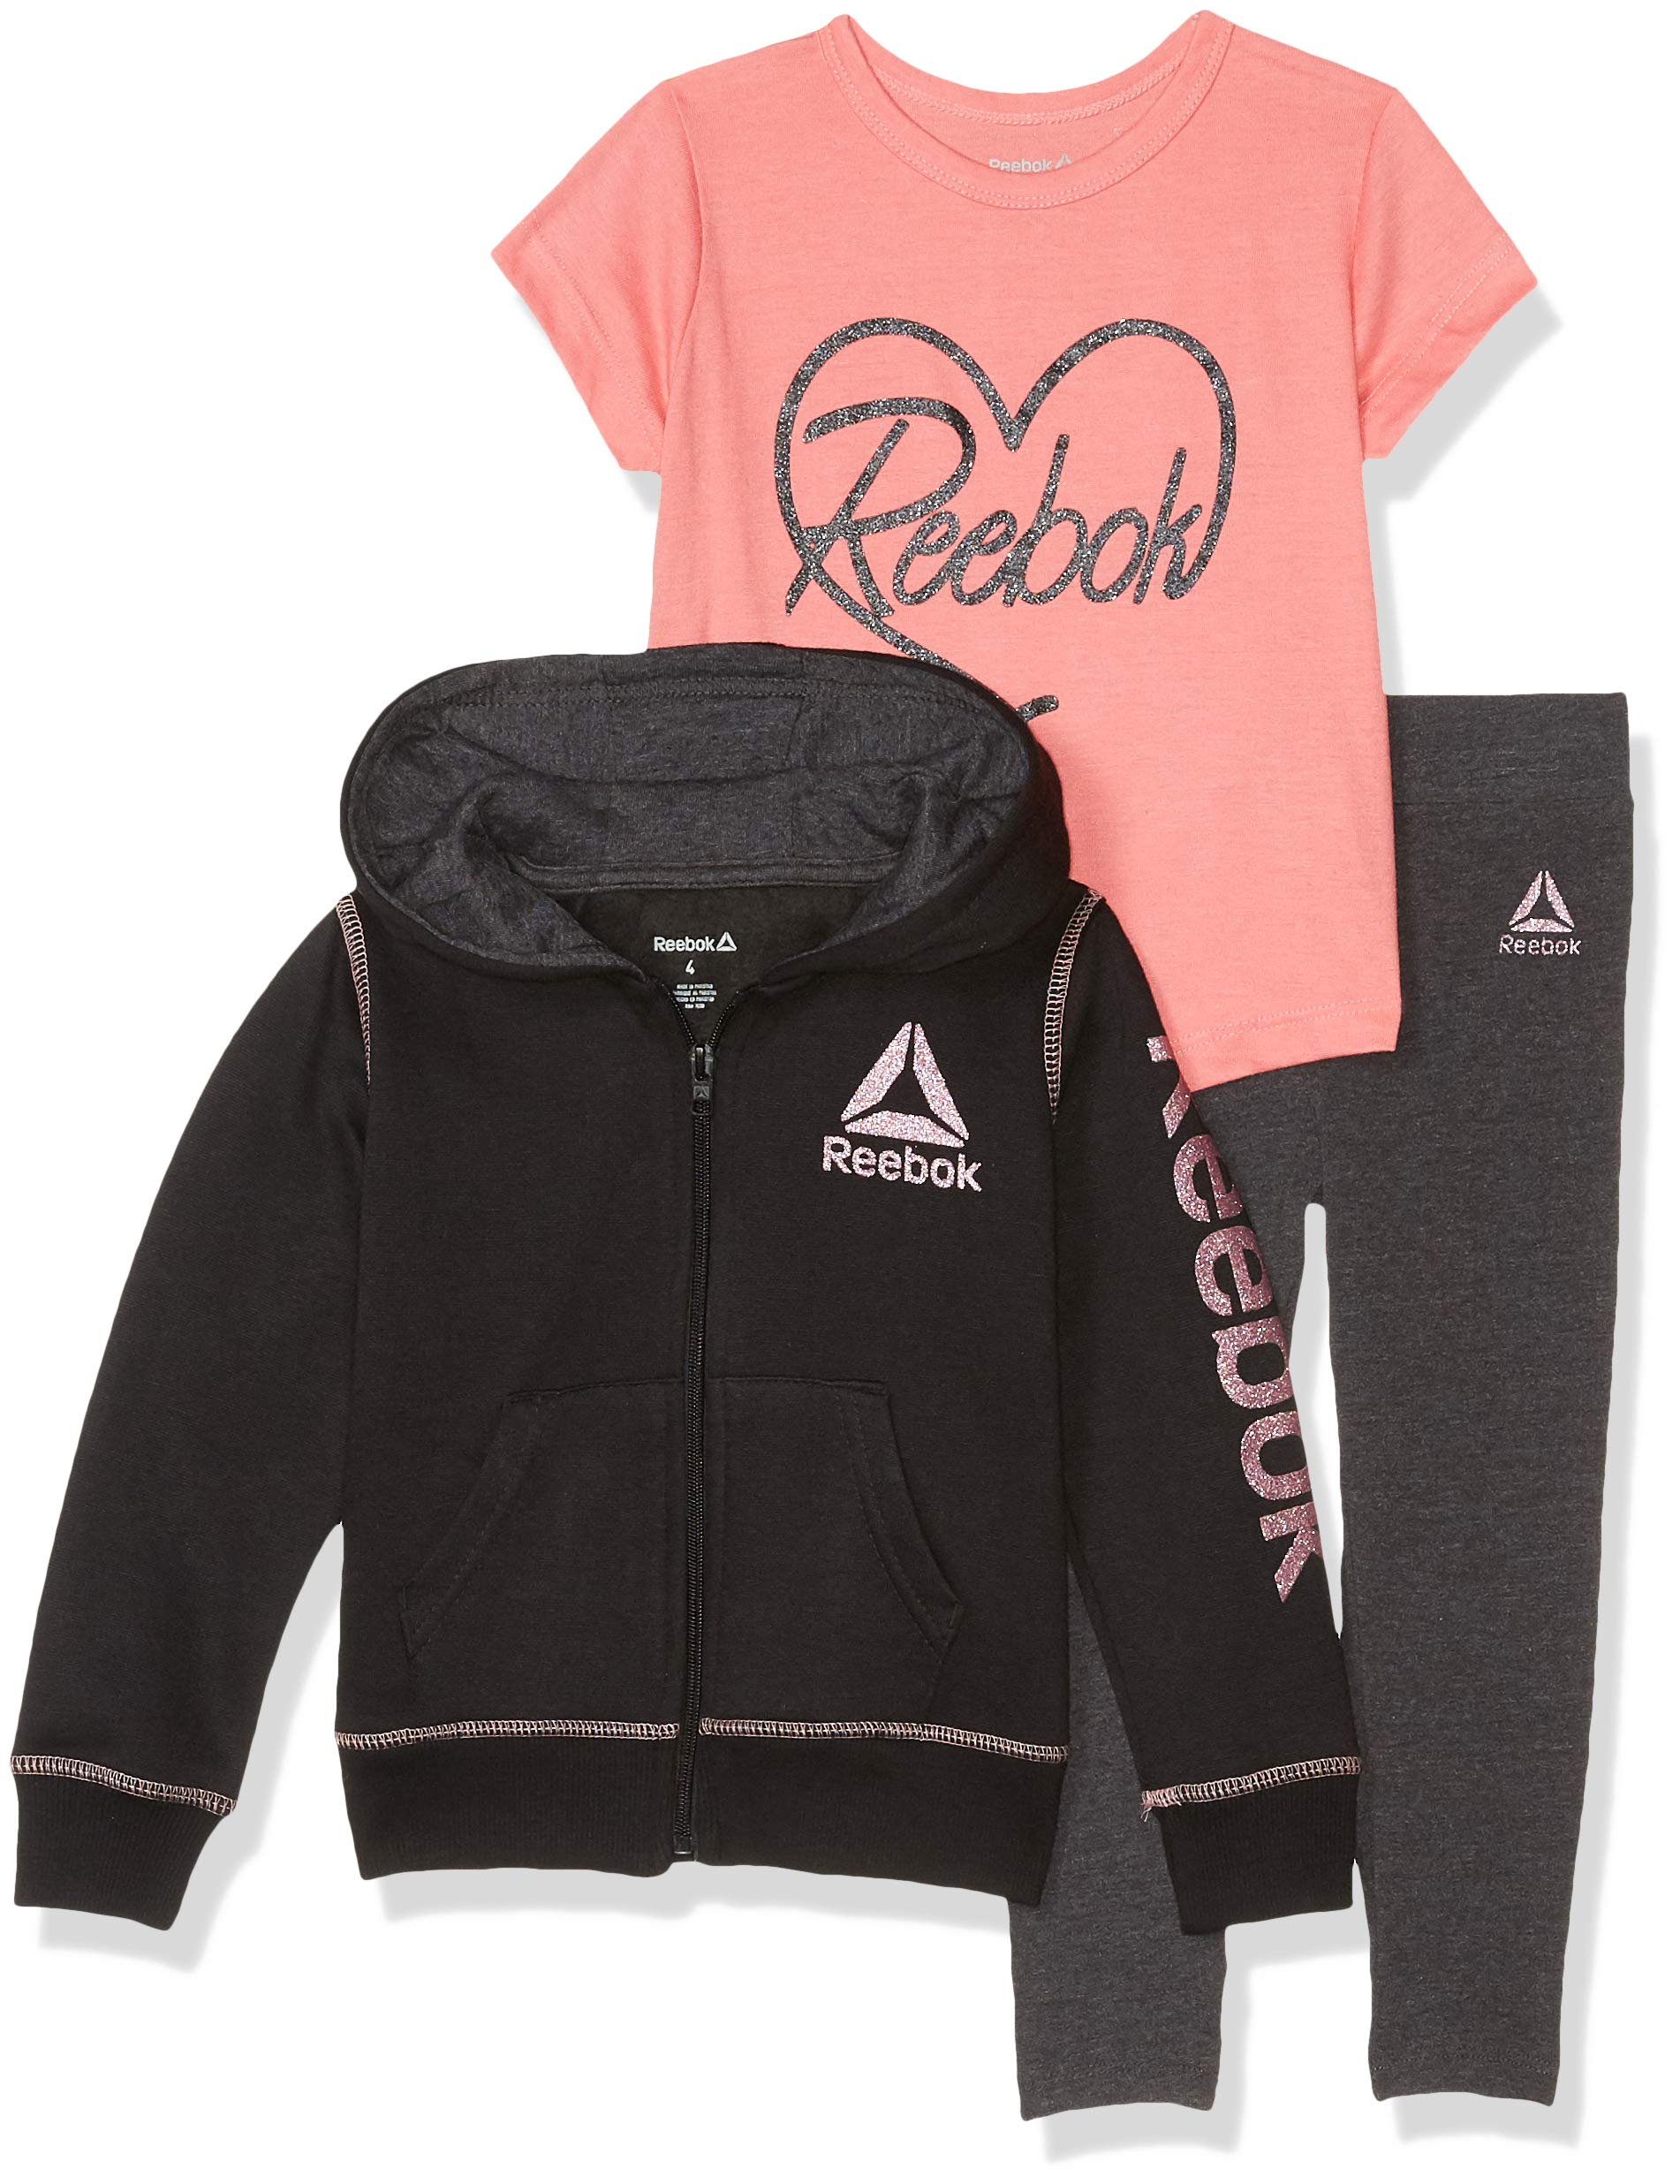 Reebok Girls' 3 Piece Set